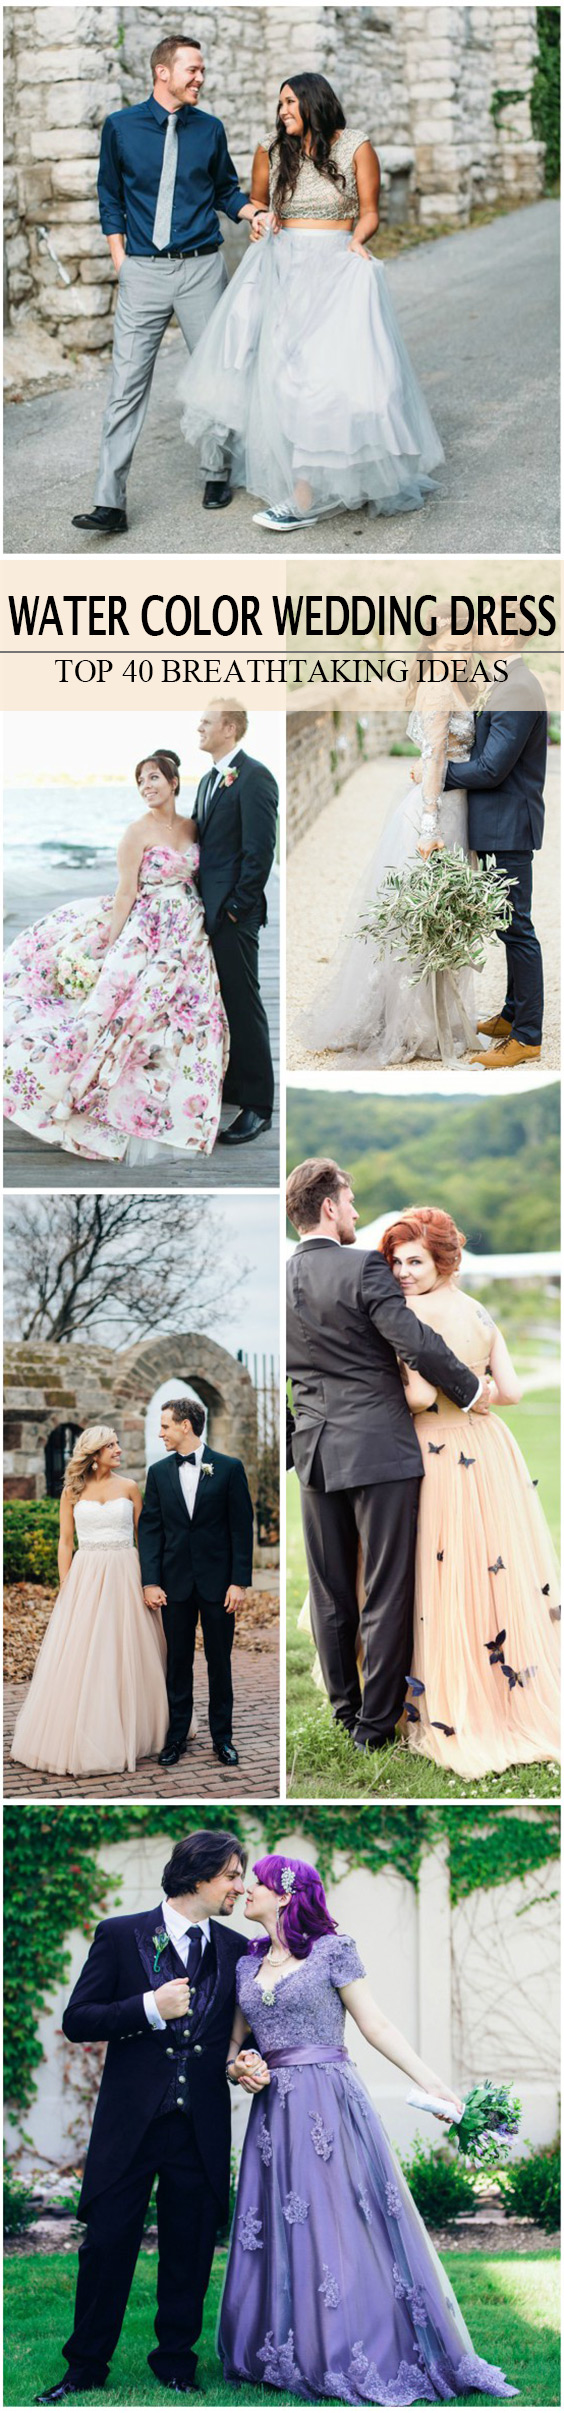 WATER COLOR WEDDING DRESS FOR SUMMER